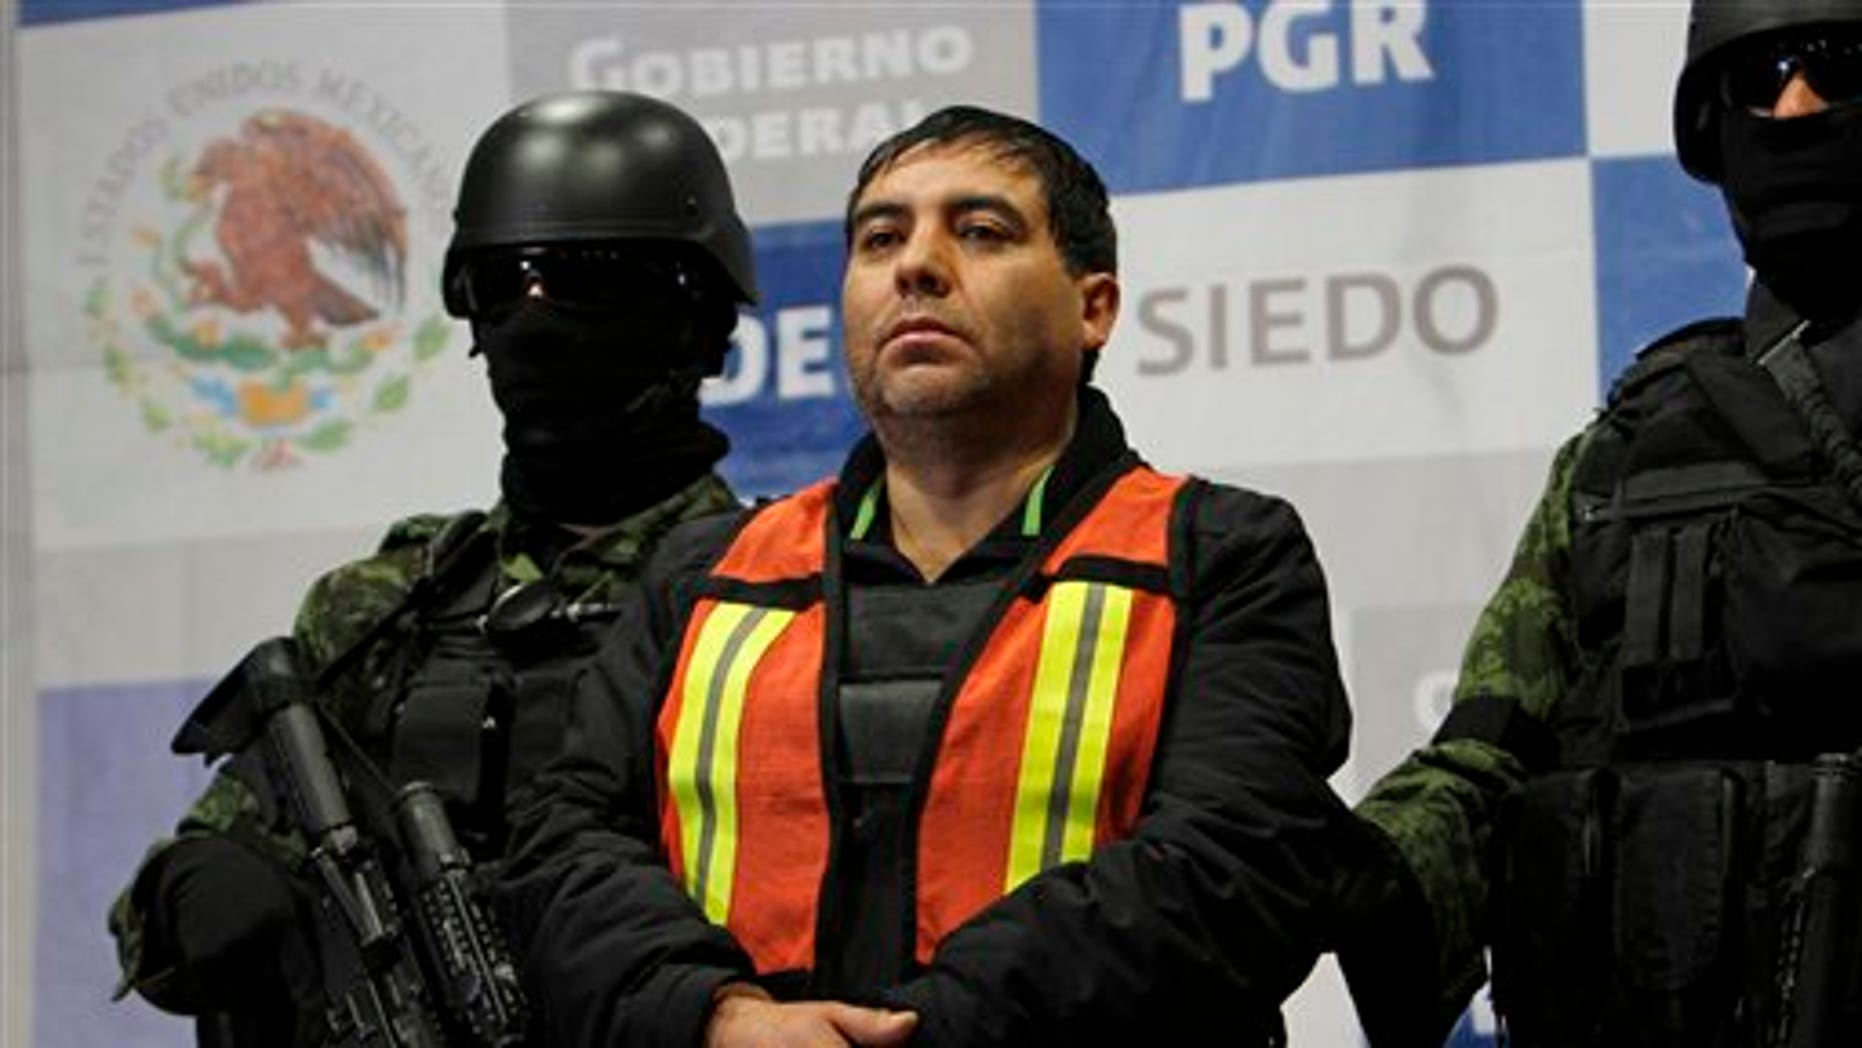 Dec. 26: Felipe Cabrera Sarabia, alias 'El Inge' is shown to the press under the custody of army soldiers at the federal organized crime investigations headquarters in Mexico City.